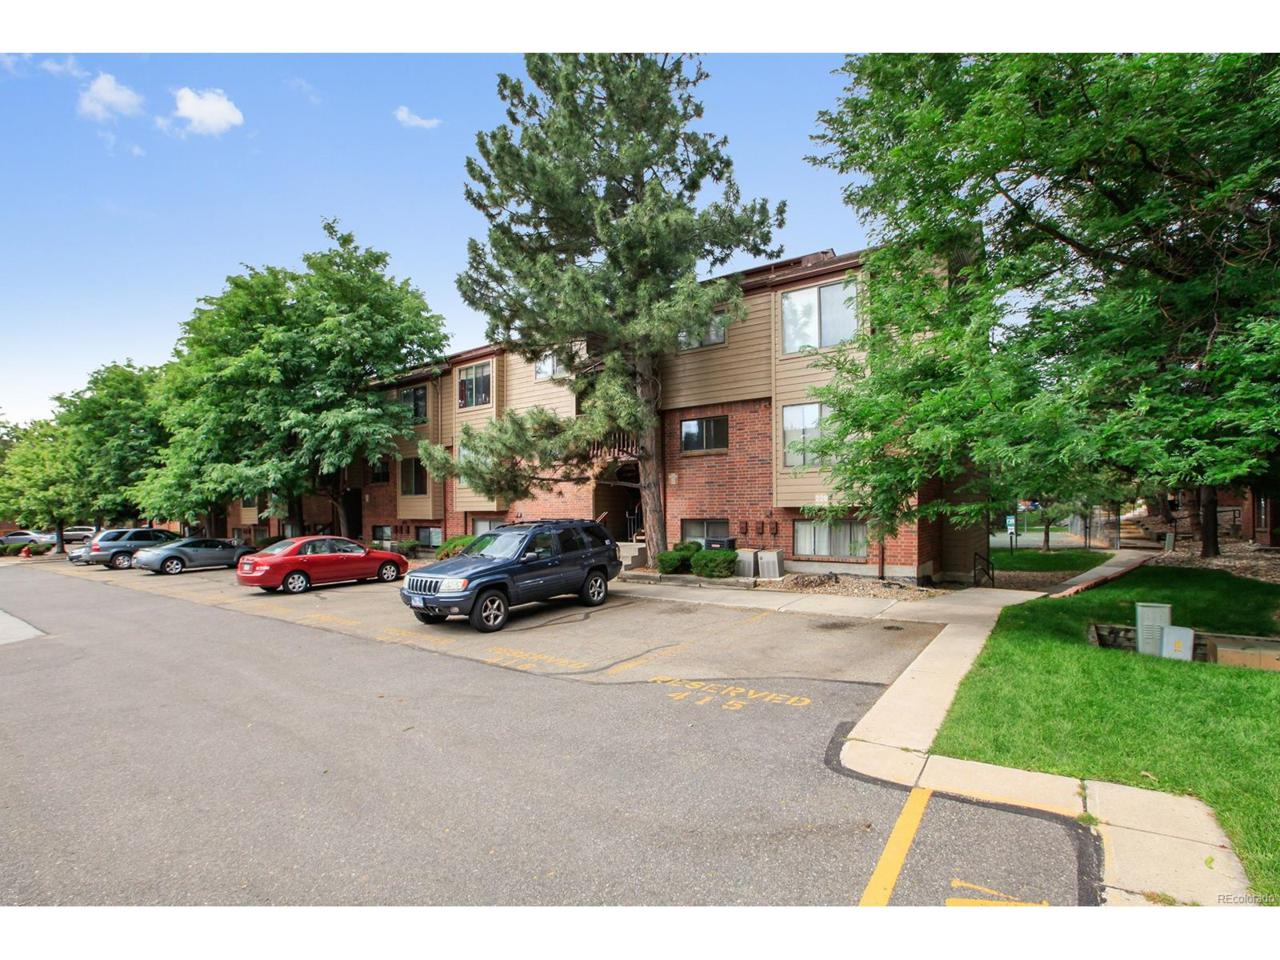 226 Wright Street #202, Lakewood, CO 80228 (MLS #7252264) :: 8z Real Estate